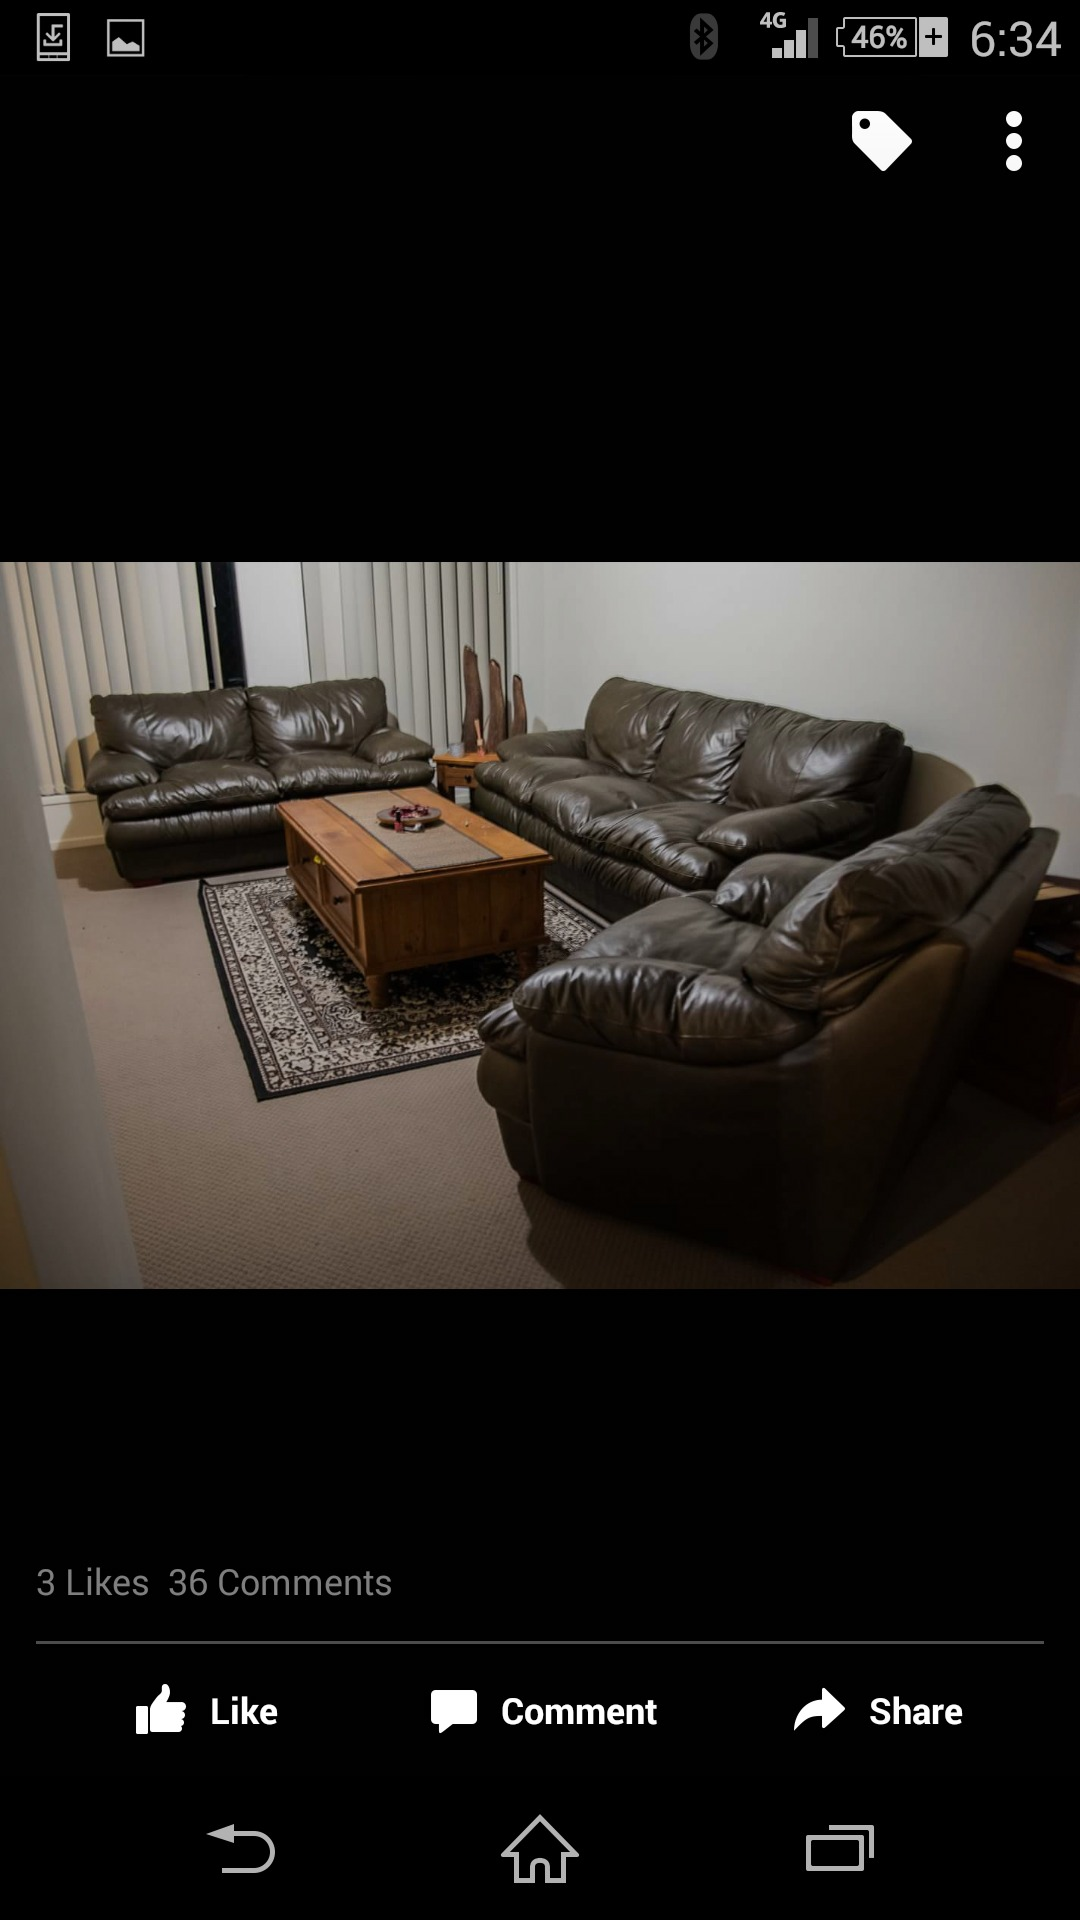 Full Leather lounge for sale the brand Janda, the name is cloud, which describes what it is like to sit in.. Three two and one seater set. Brown colour.. Was $6990 new make an offer